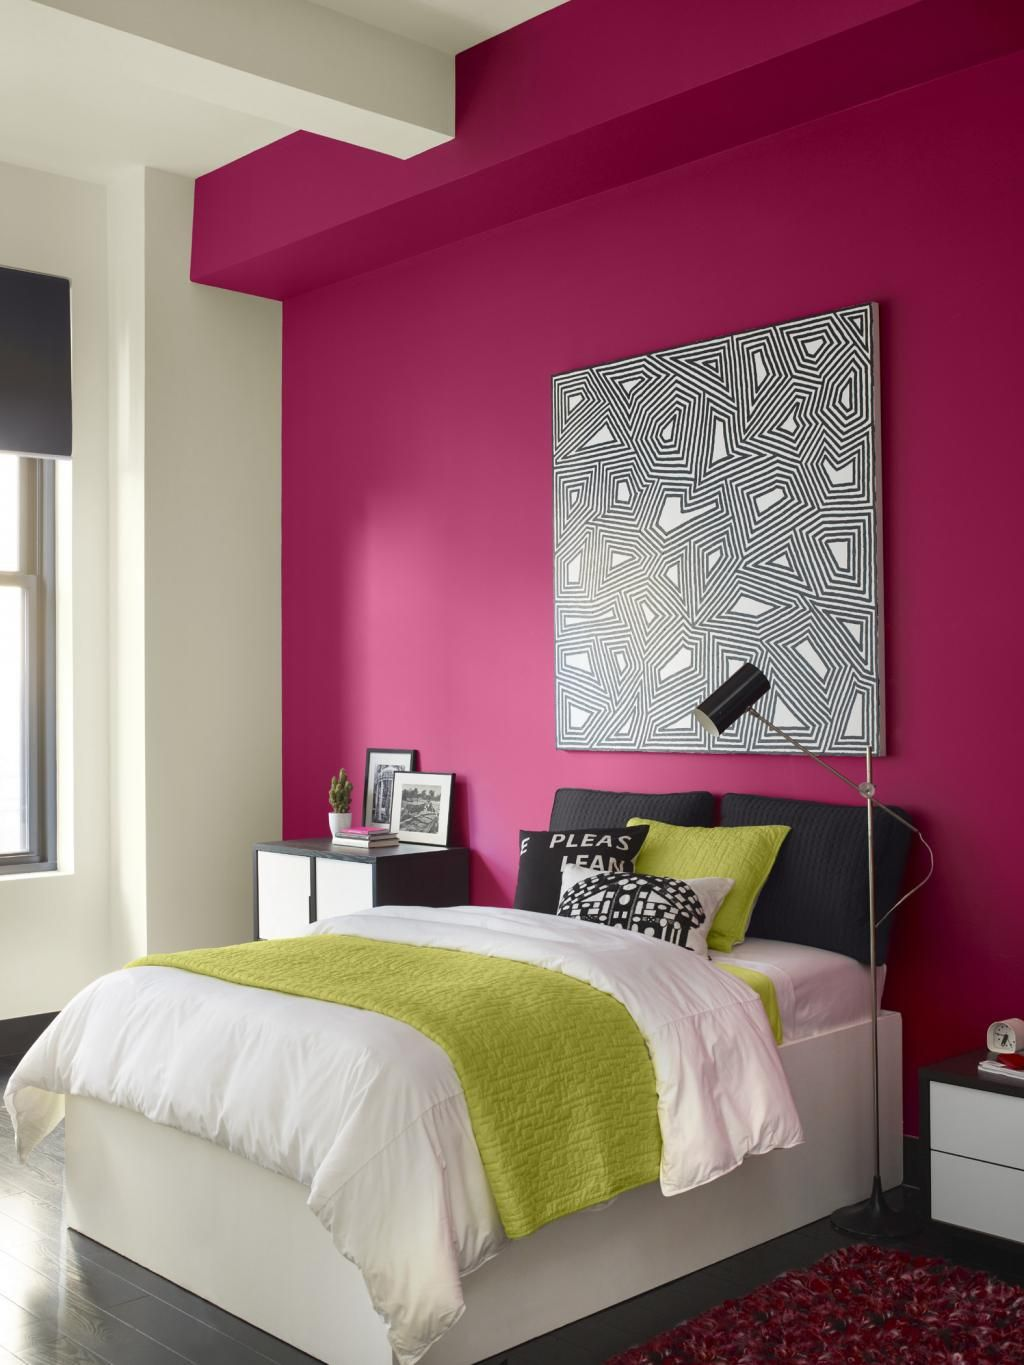 Interior Design Teen Bedroom Color Combination With Bright Pink White Color Home Interior Colour Design Combinations Ideas